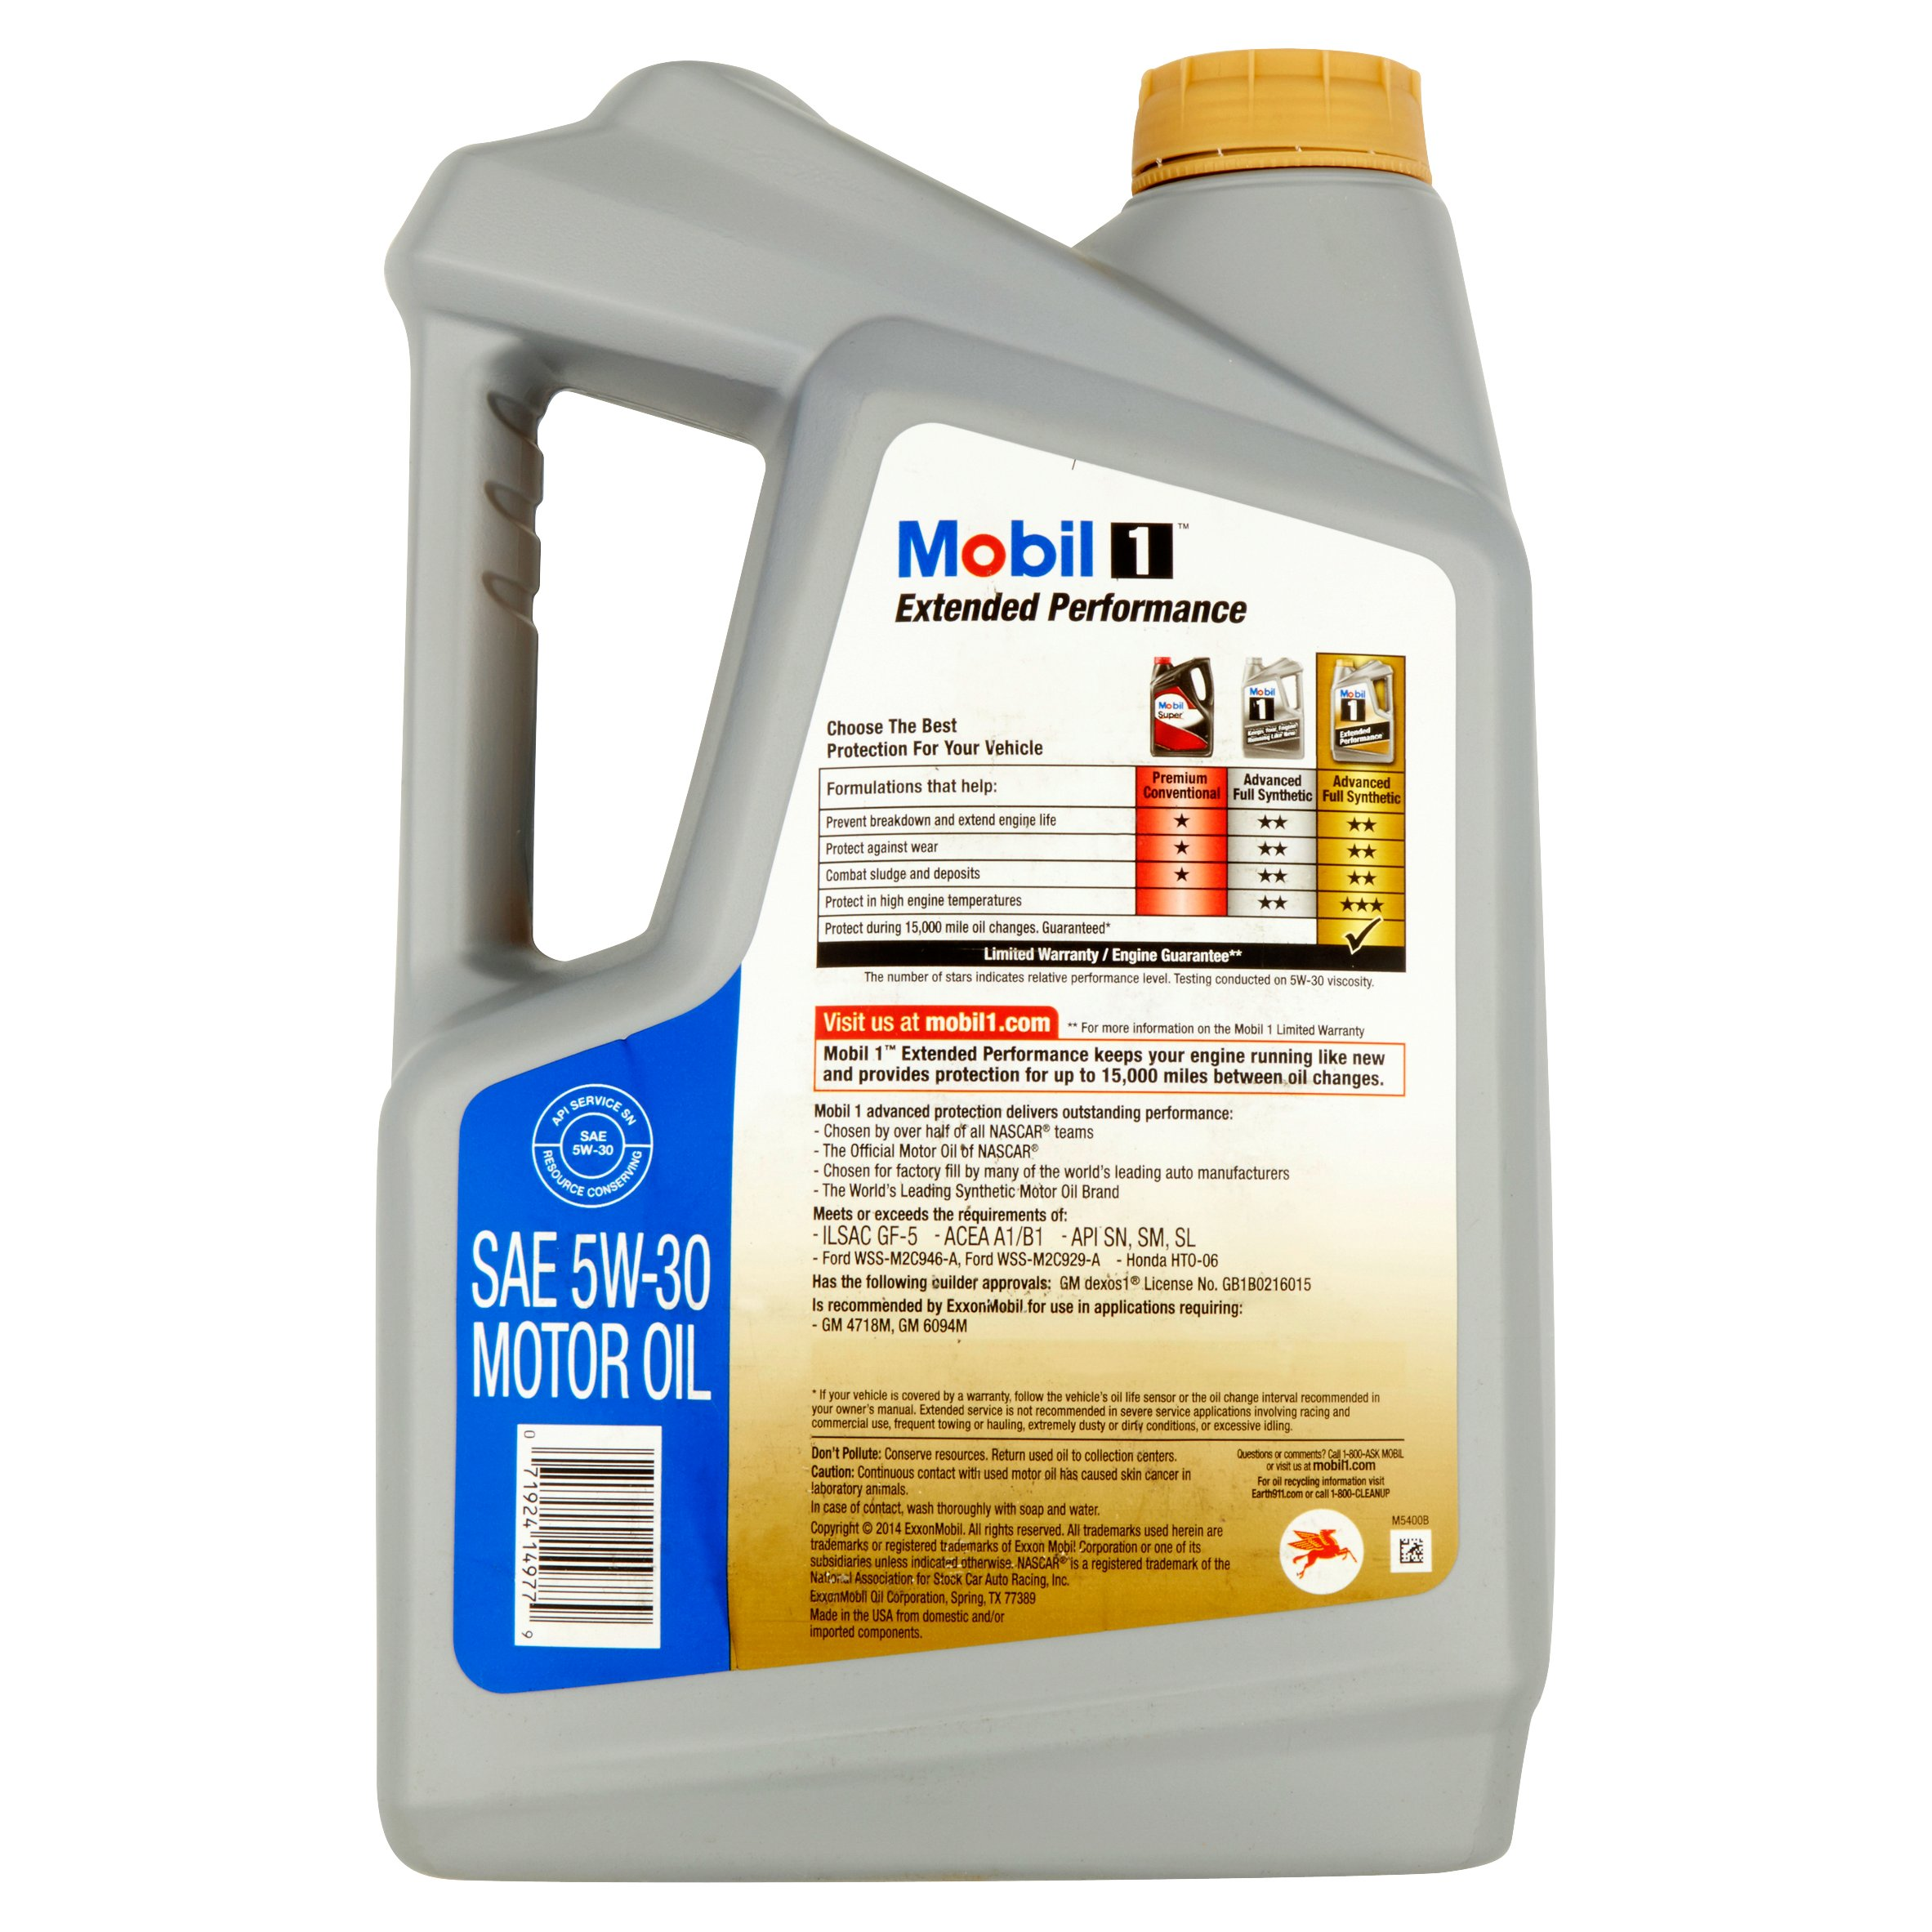 Mobil 1 5w 30 extended performance full synthetic motor oil 5 qt mobil 1 5w 30 extended performance full synthetic motor oil 5 qt walmart fandeluxe Image collections